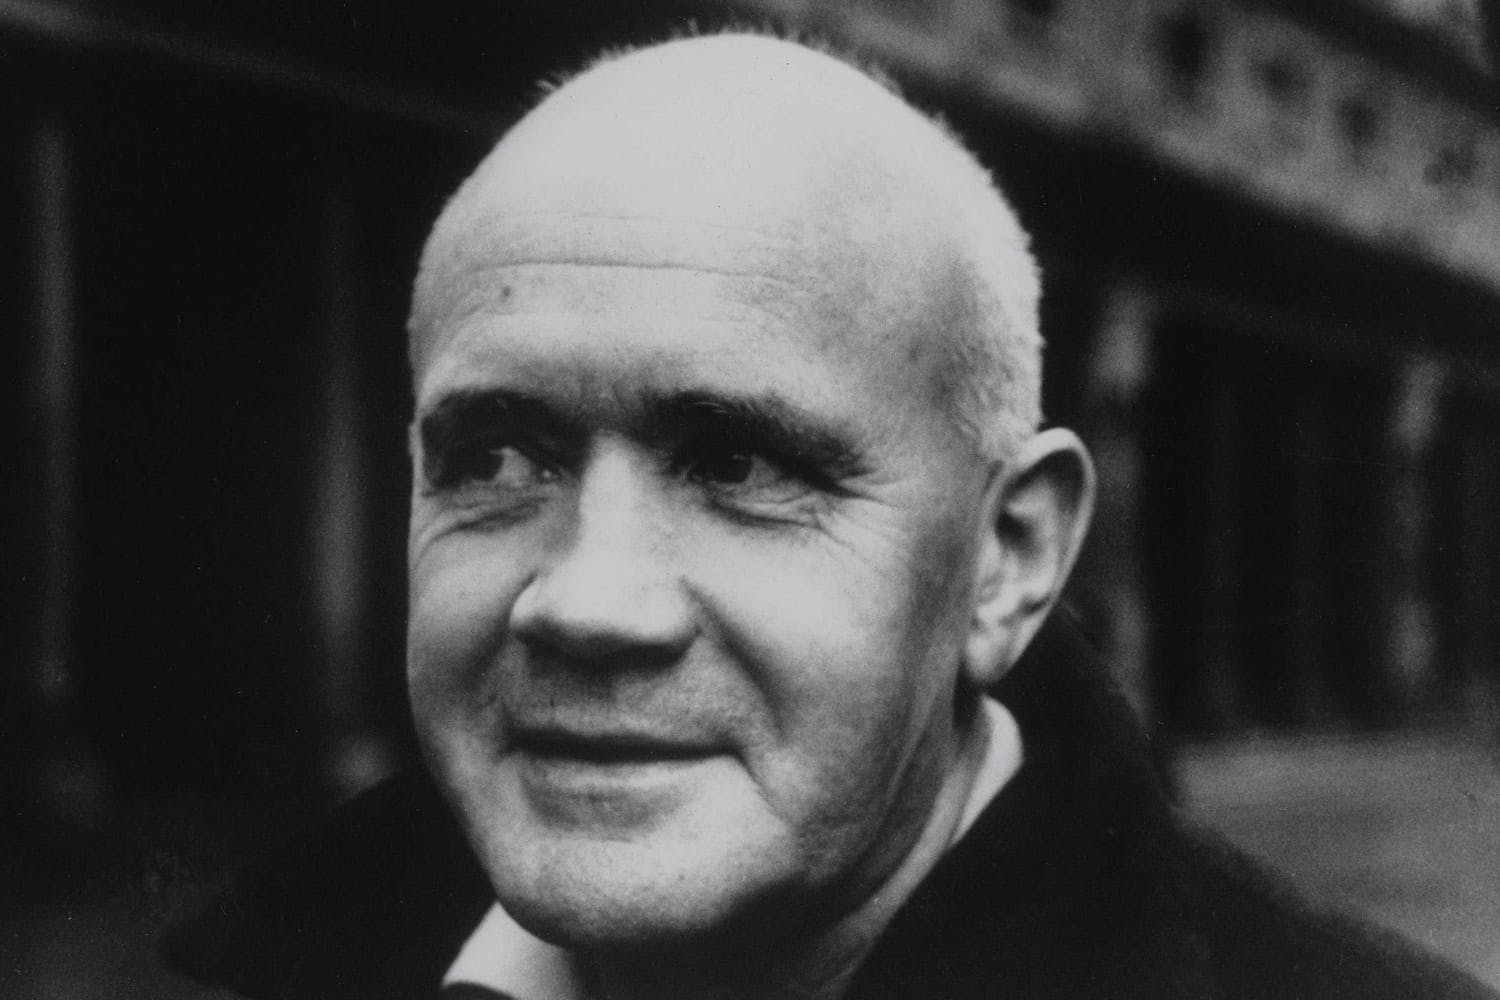 The Crime of Jean Genet